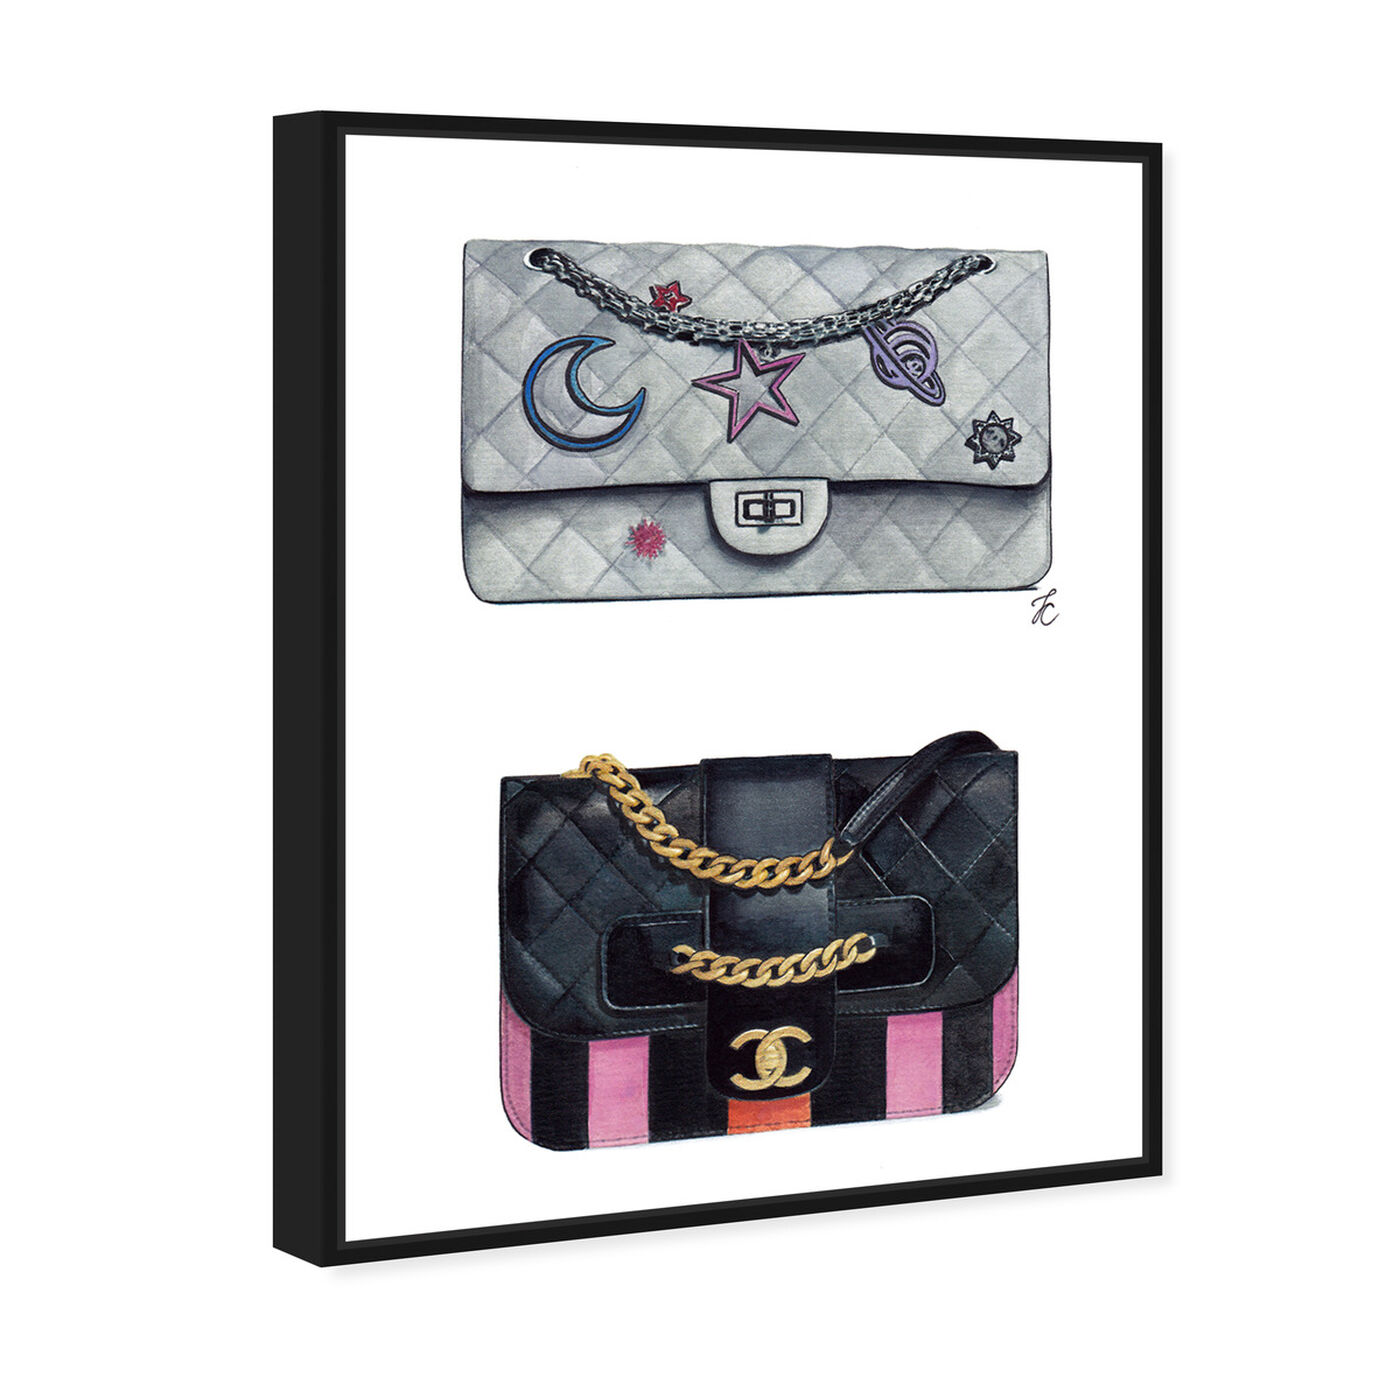 Angled view of Doll Memories - Iconic Bag Beauty featuring fashion and glam and handbags art.